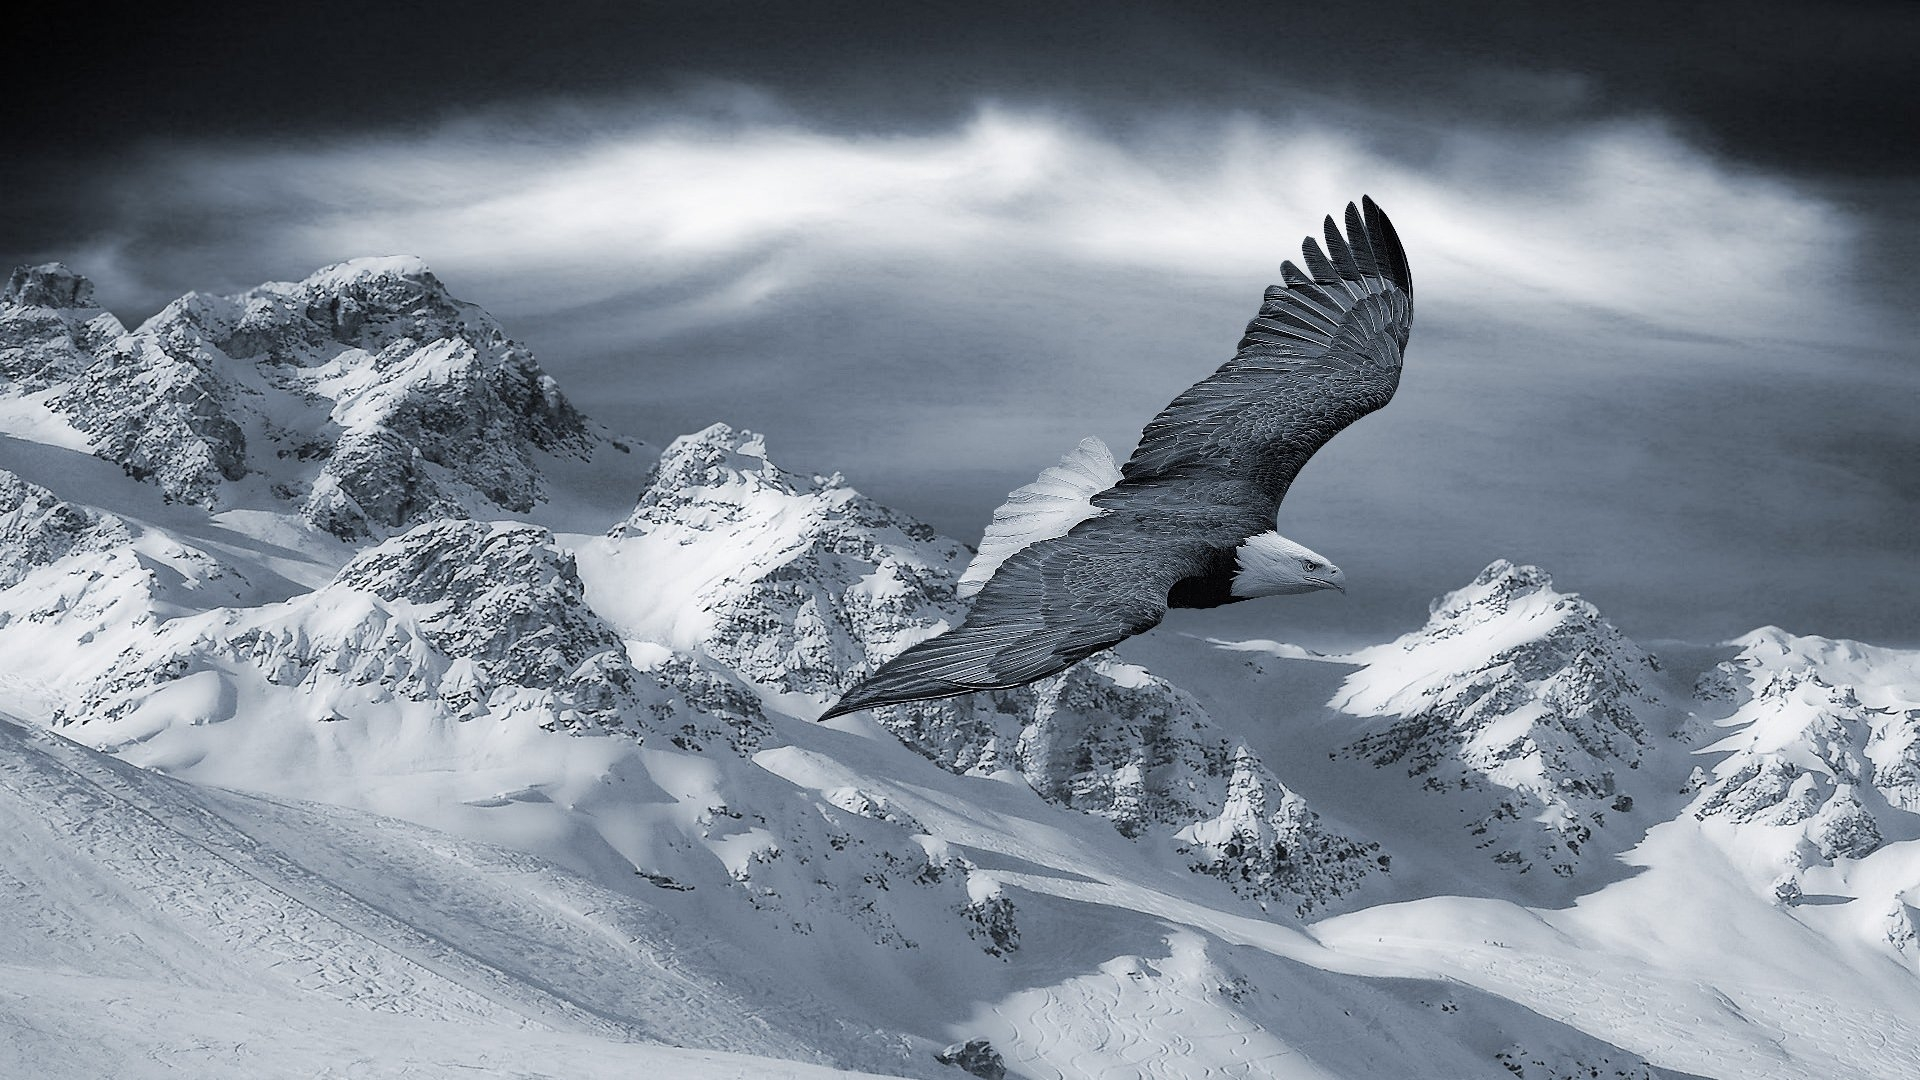 Eagle On Snow Wallpaper